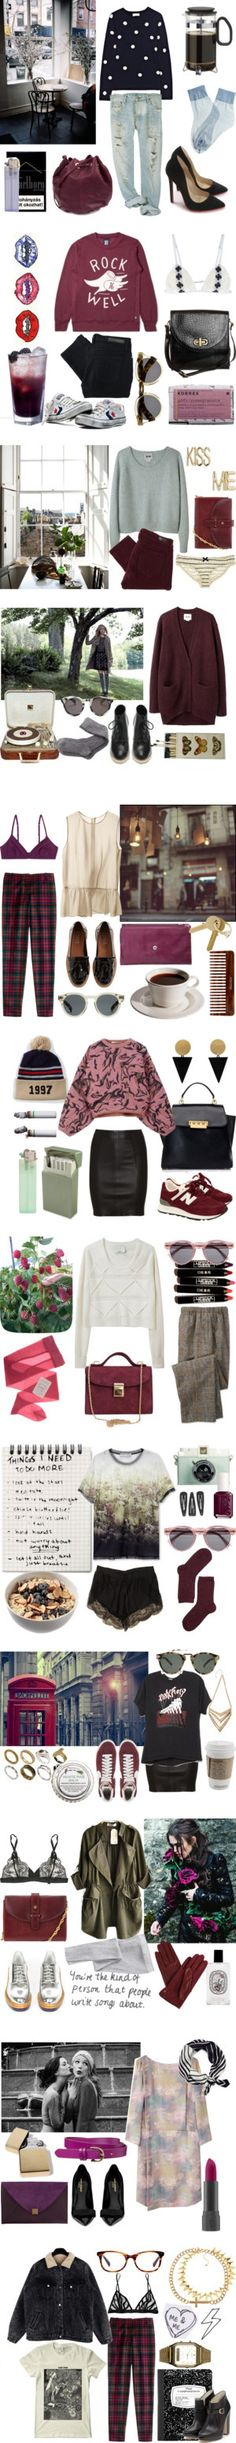 """""""Prune"""" by kelly-m-o on Polyvore"""